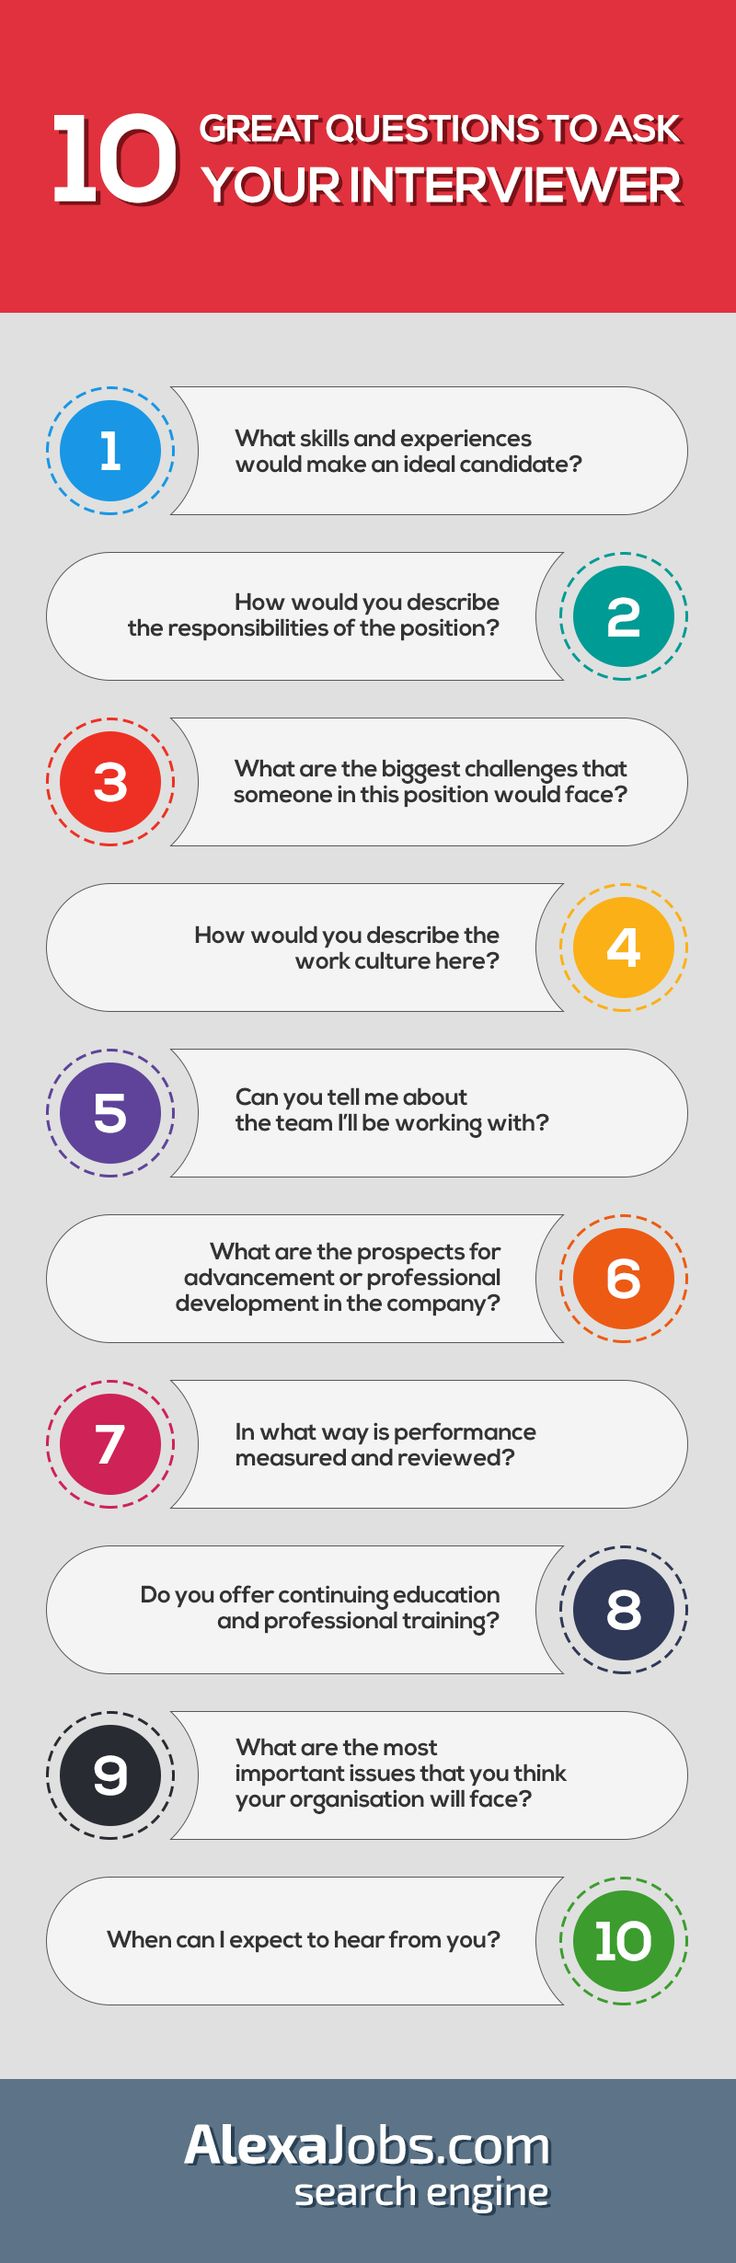 best ideas about tips for interview job 10 great questions to ask your interviewer infographic often job interviews can feel like an interrogation but they re meant to be a conversation